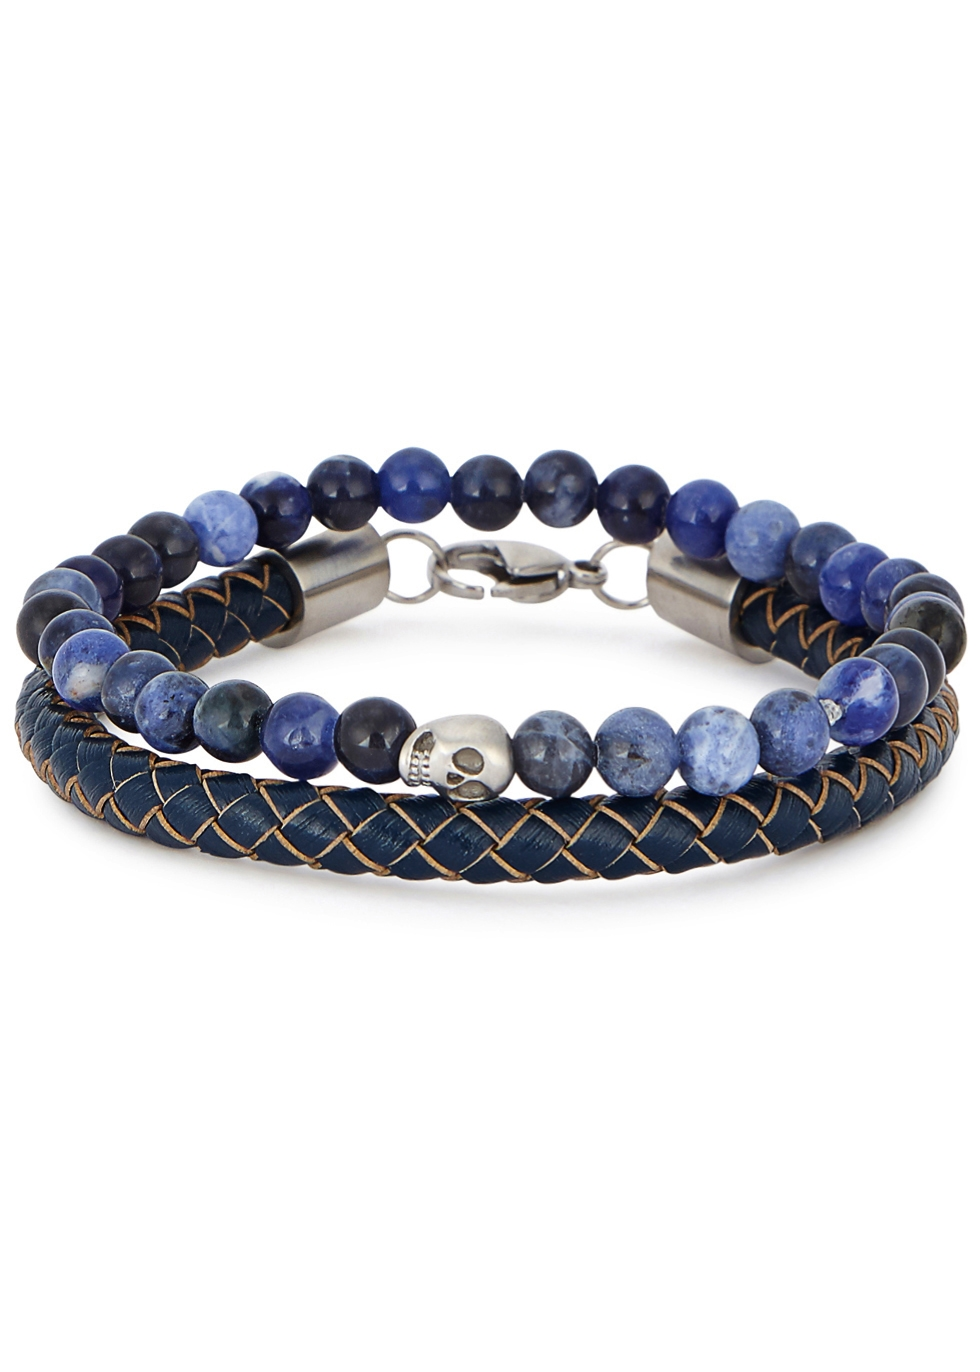 SIMON CARTER LEATHER AND SODALITE BRACELETS - SET OF TWO